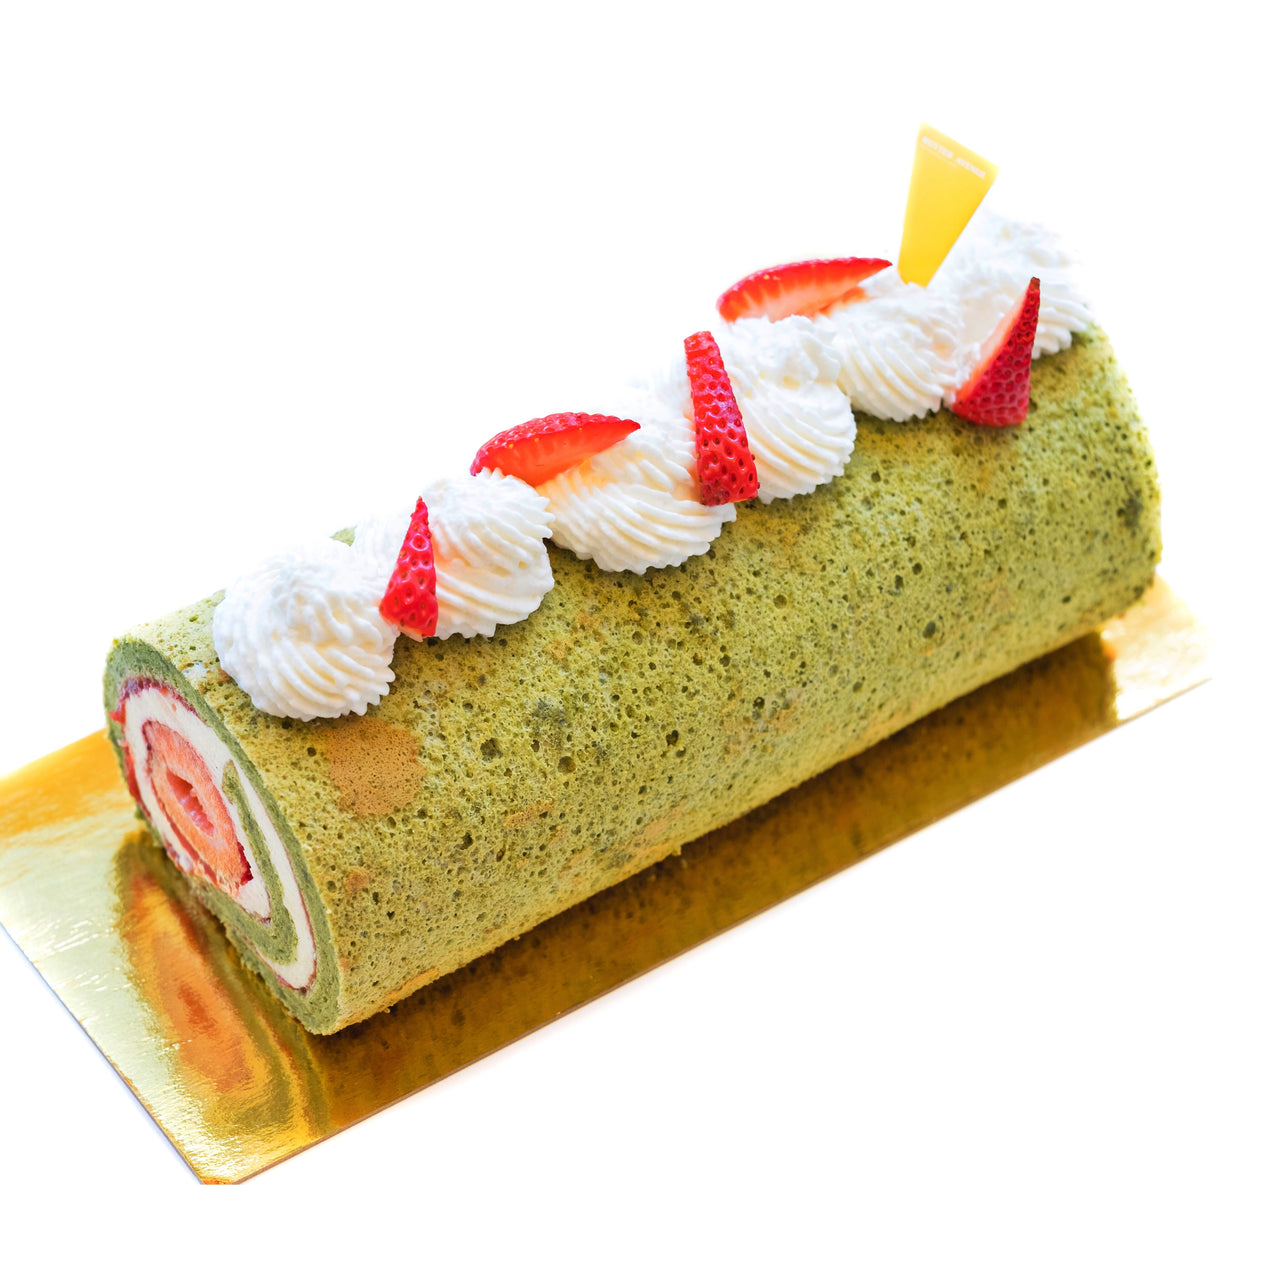 Strawberry Matcha Roll Cake